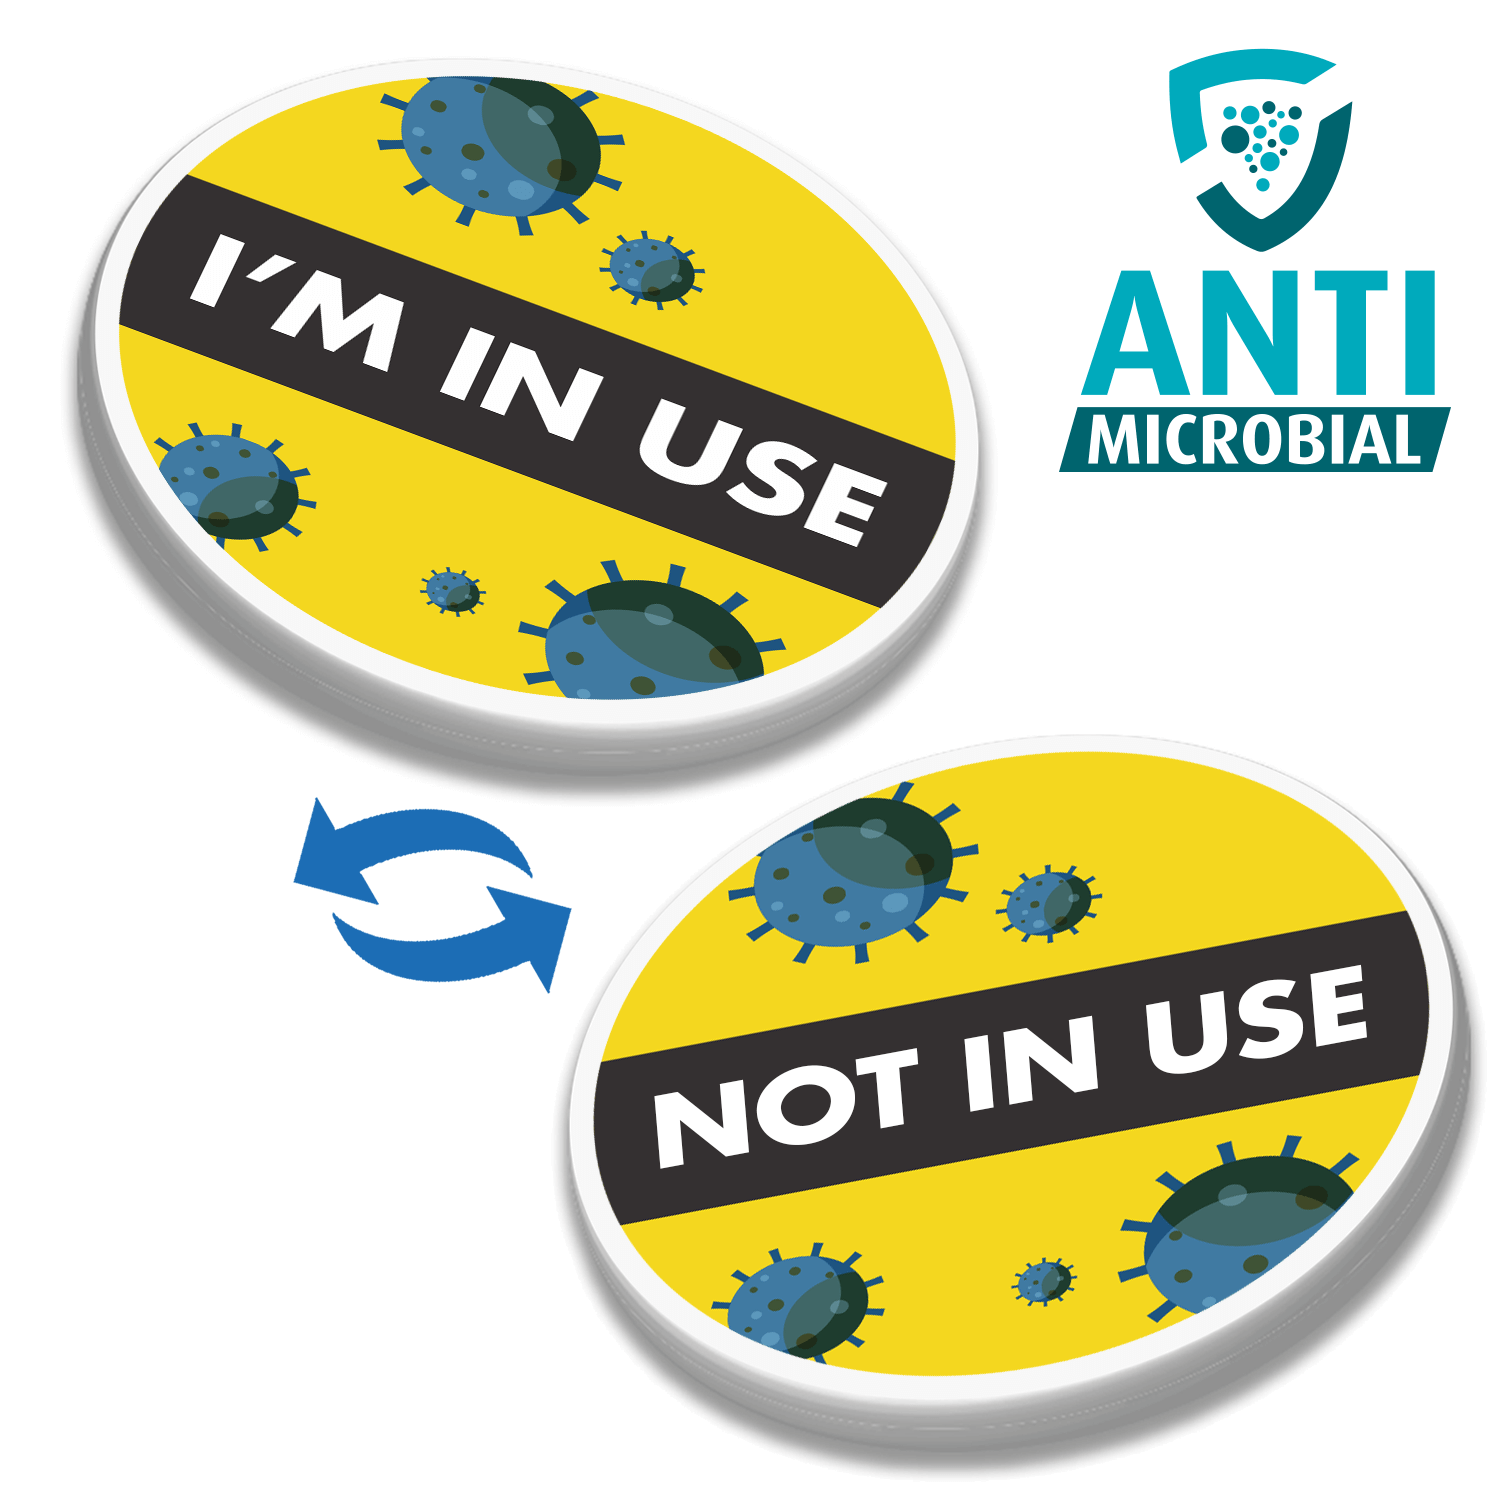 100% Recycled 40mm Antimicrobial Plastic Token - Both Sides